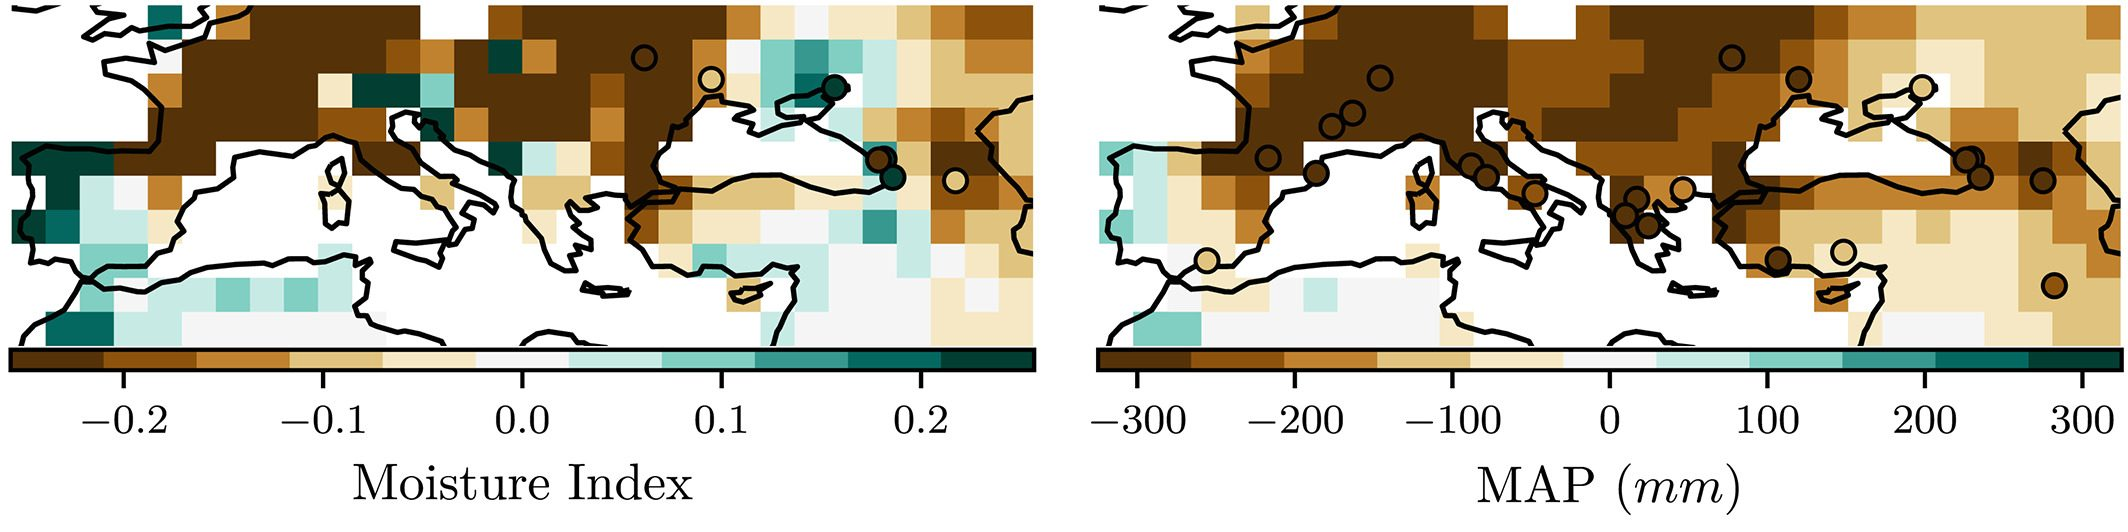 A Method for Generating Coherent Spatially Explicit Maps of Seasonal Paleoclimates From Site‐Based Reconstructions by Sandy P. Harrison